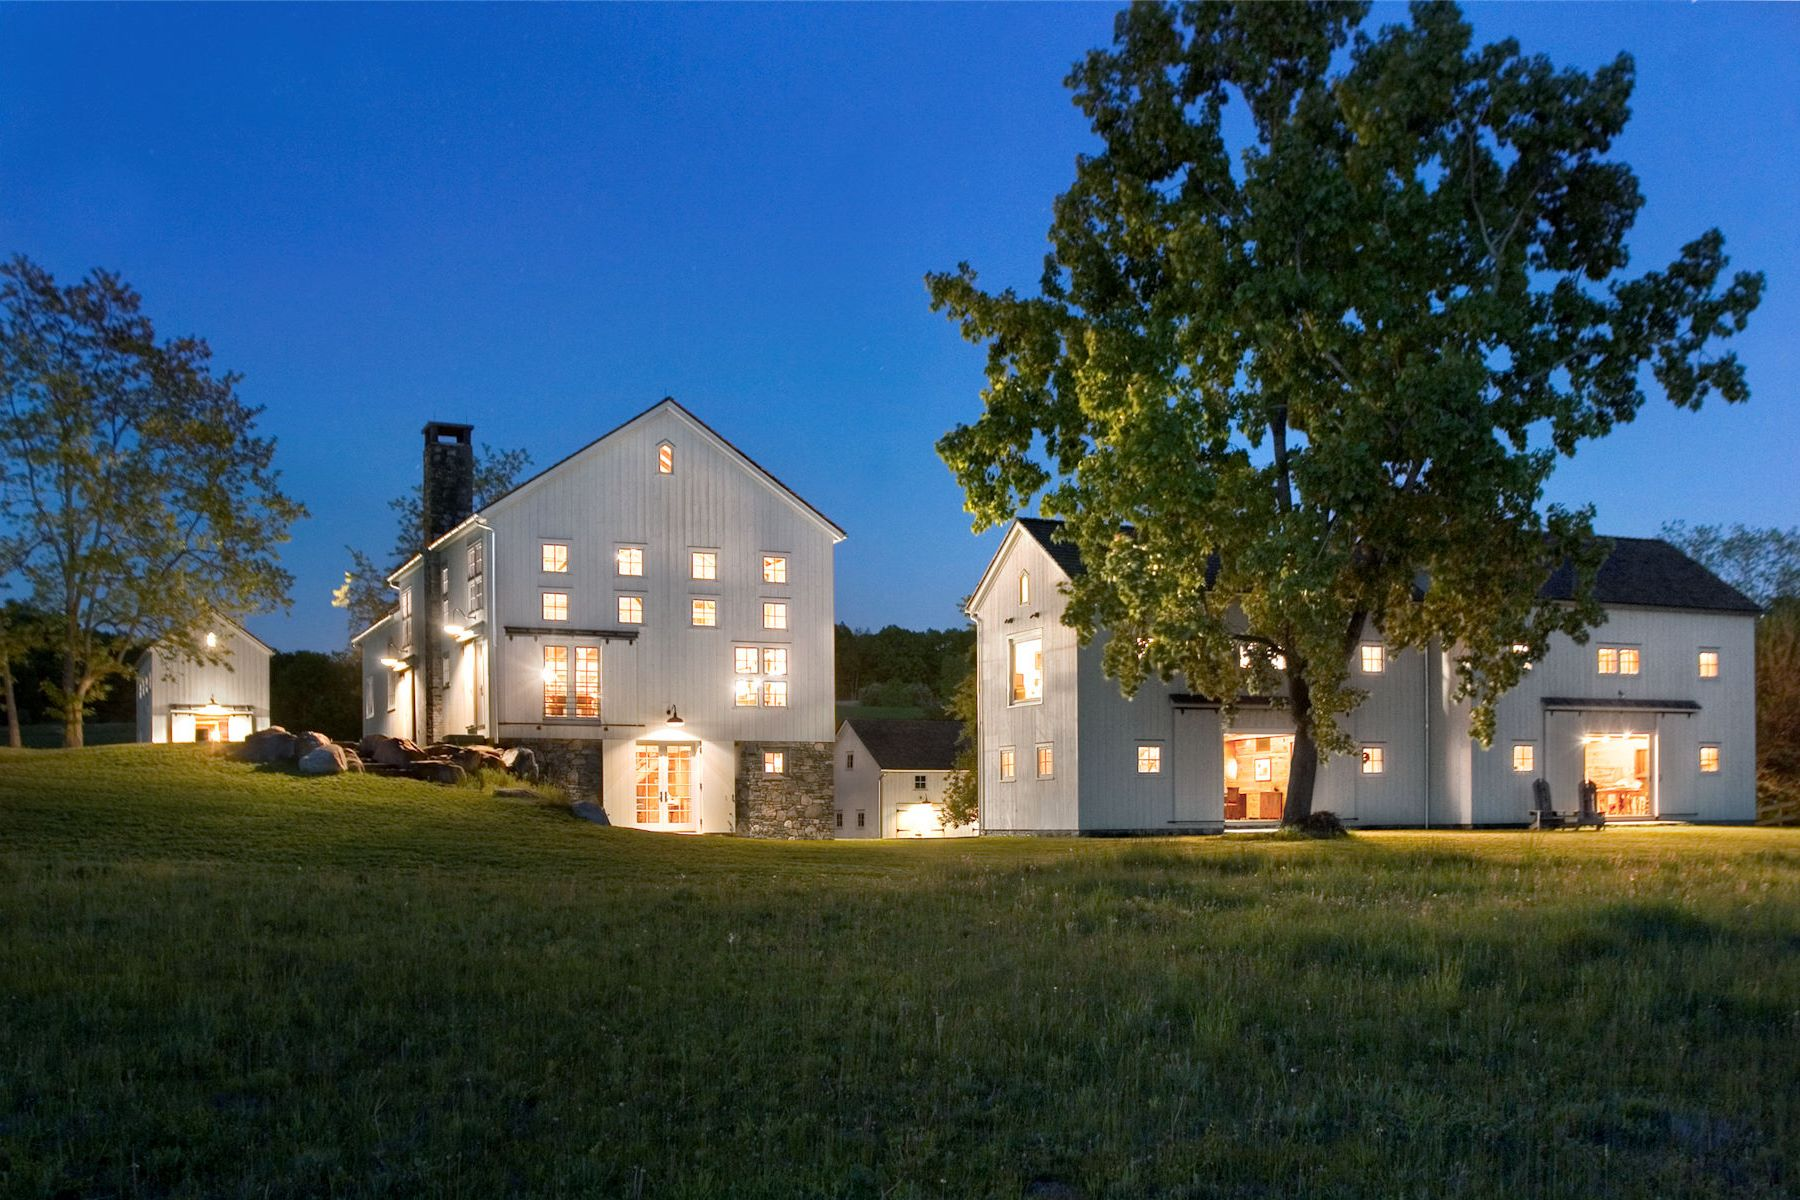 Single Family Home for Sale at Four Barns Farm Millbrook, New York 12545 United States